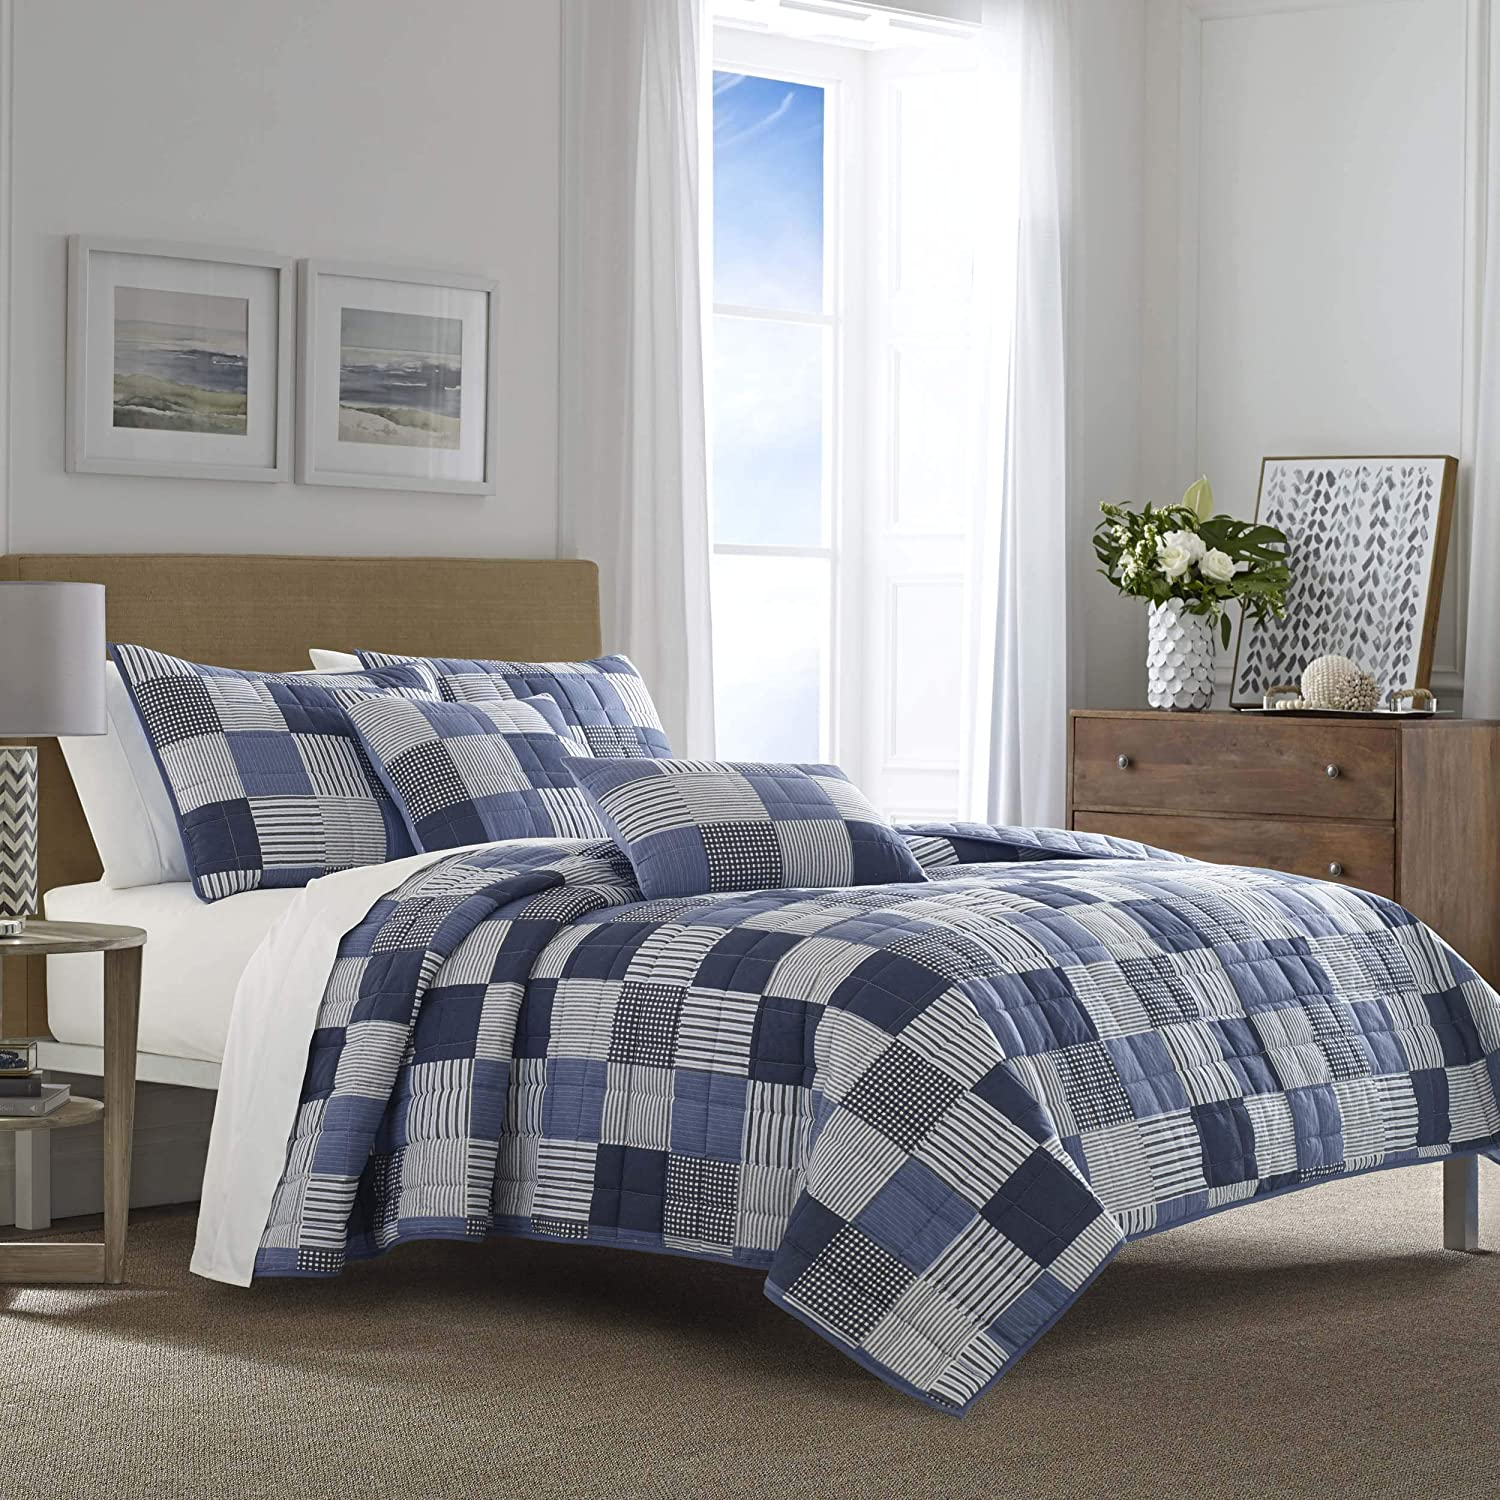 Nautica Holly Grove Quilt Set, Full/Queen, Blue